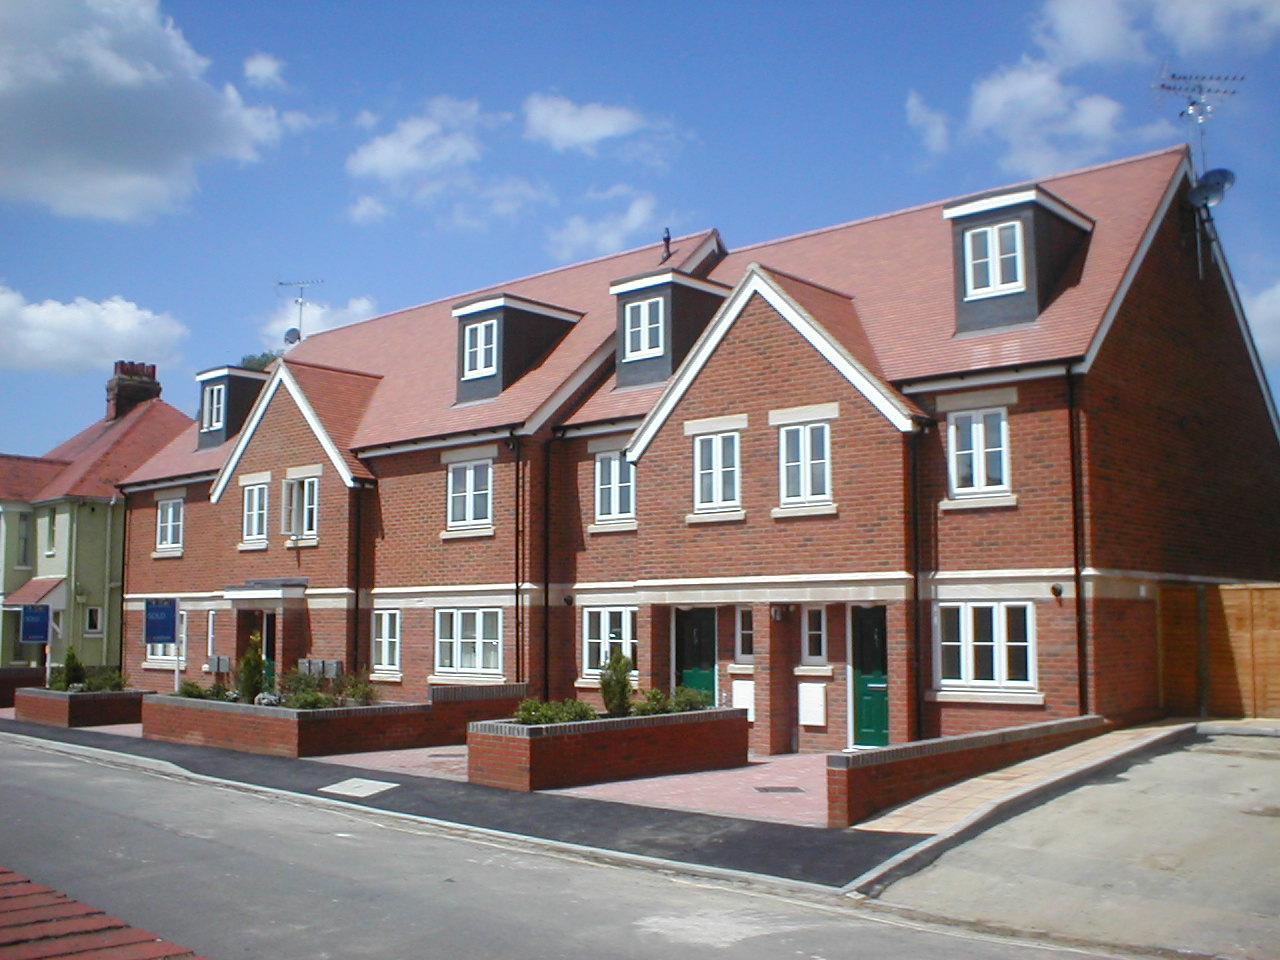 The new housing and planning bill